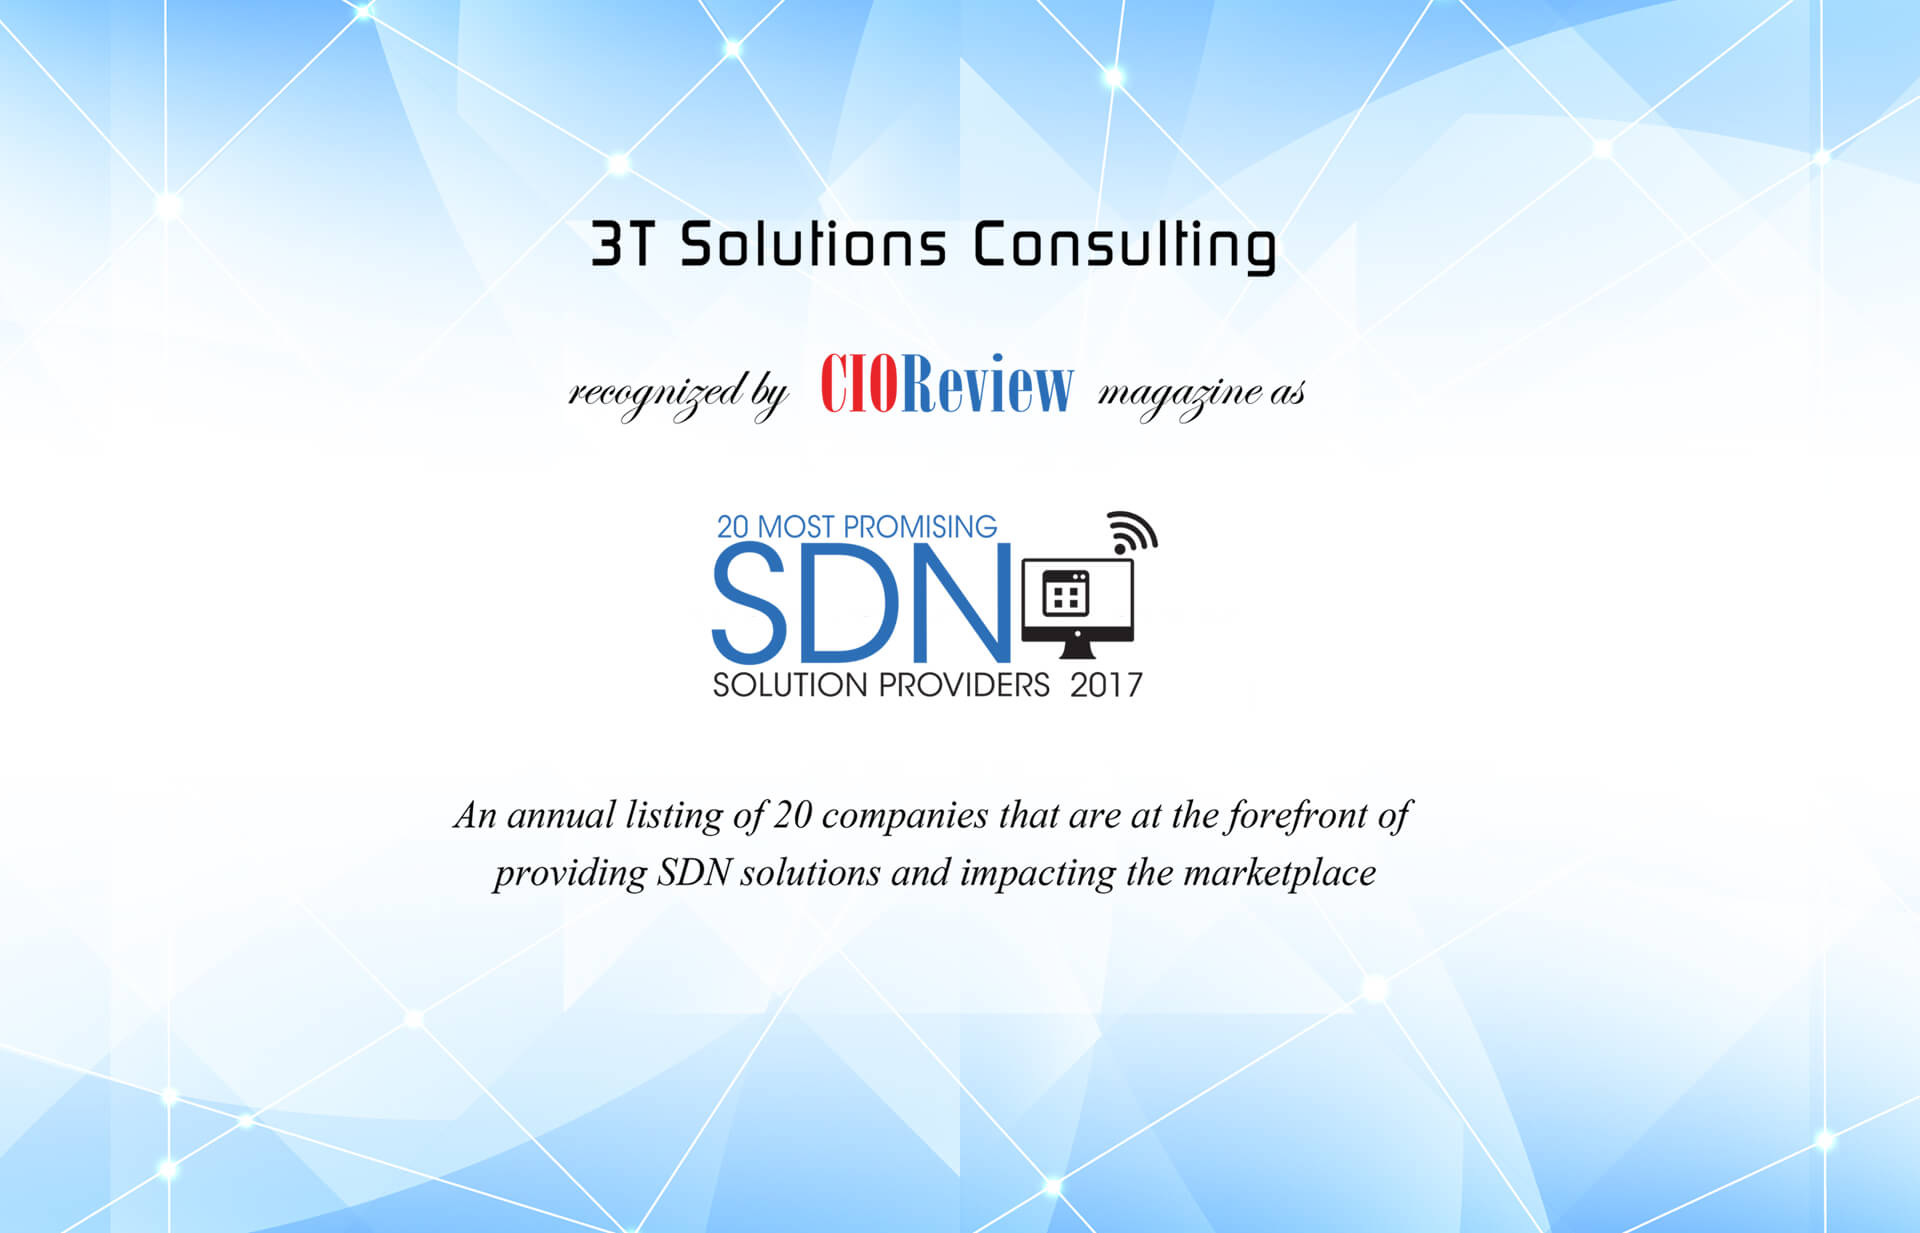 3T Solutions Consulting CIO Award